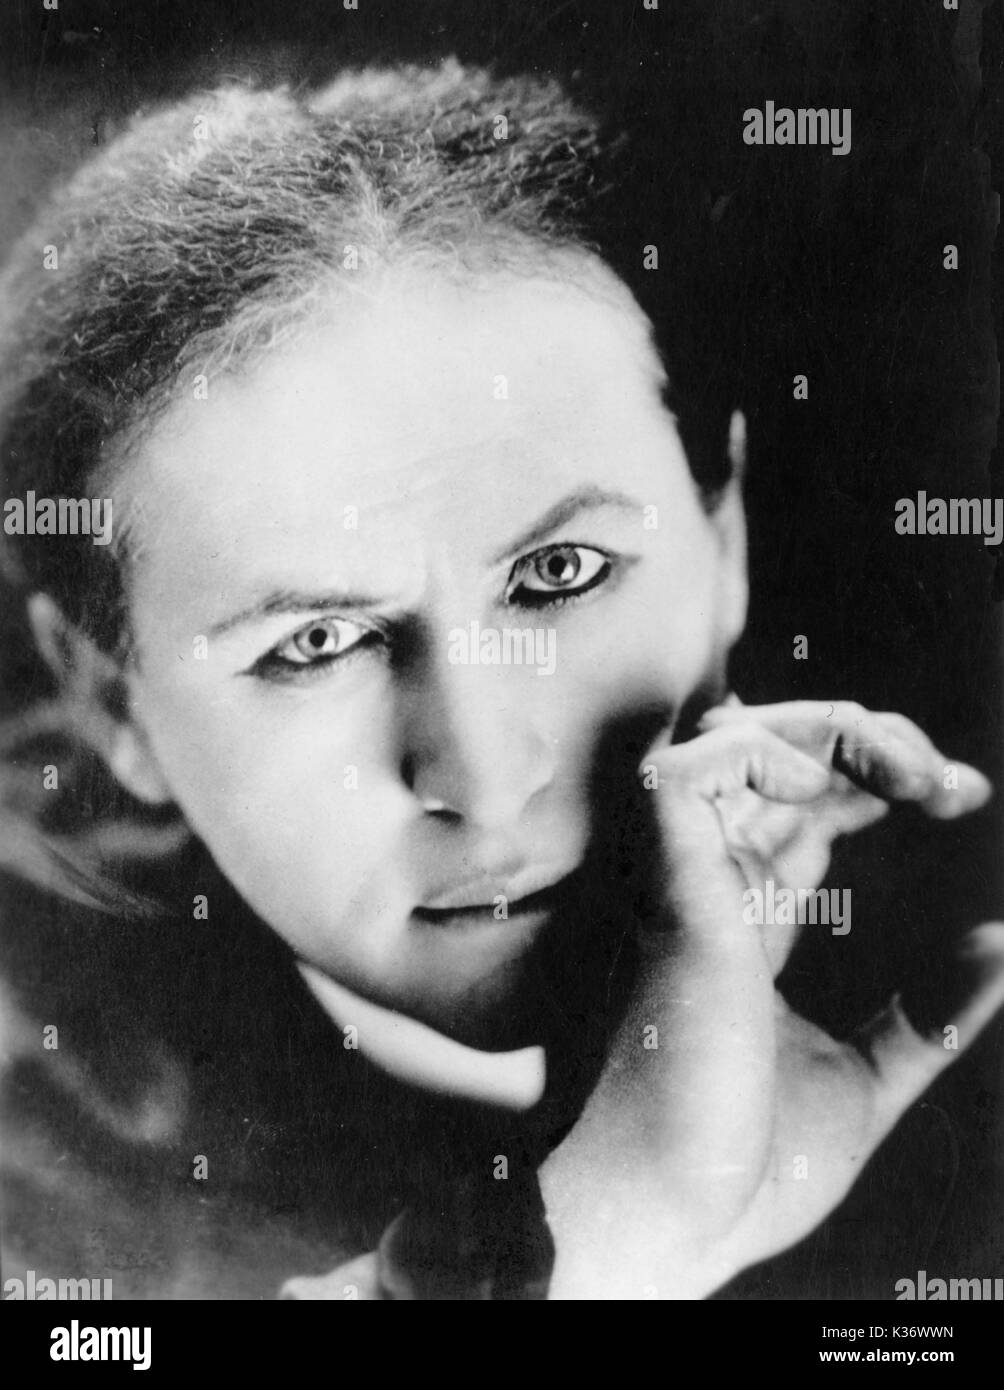 HARRY HOUDINI PICTURE FROM THE RONALD GRANT ARCHIVE Stock